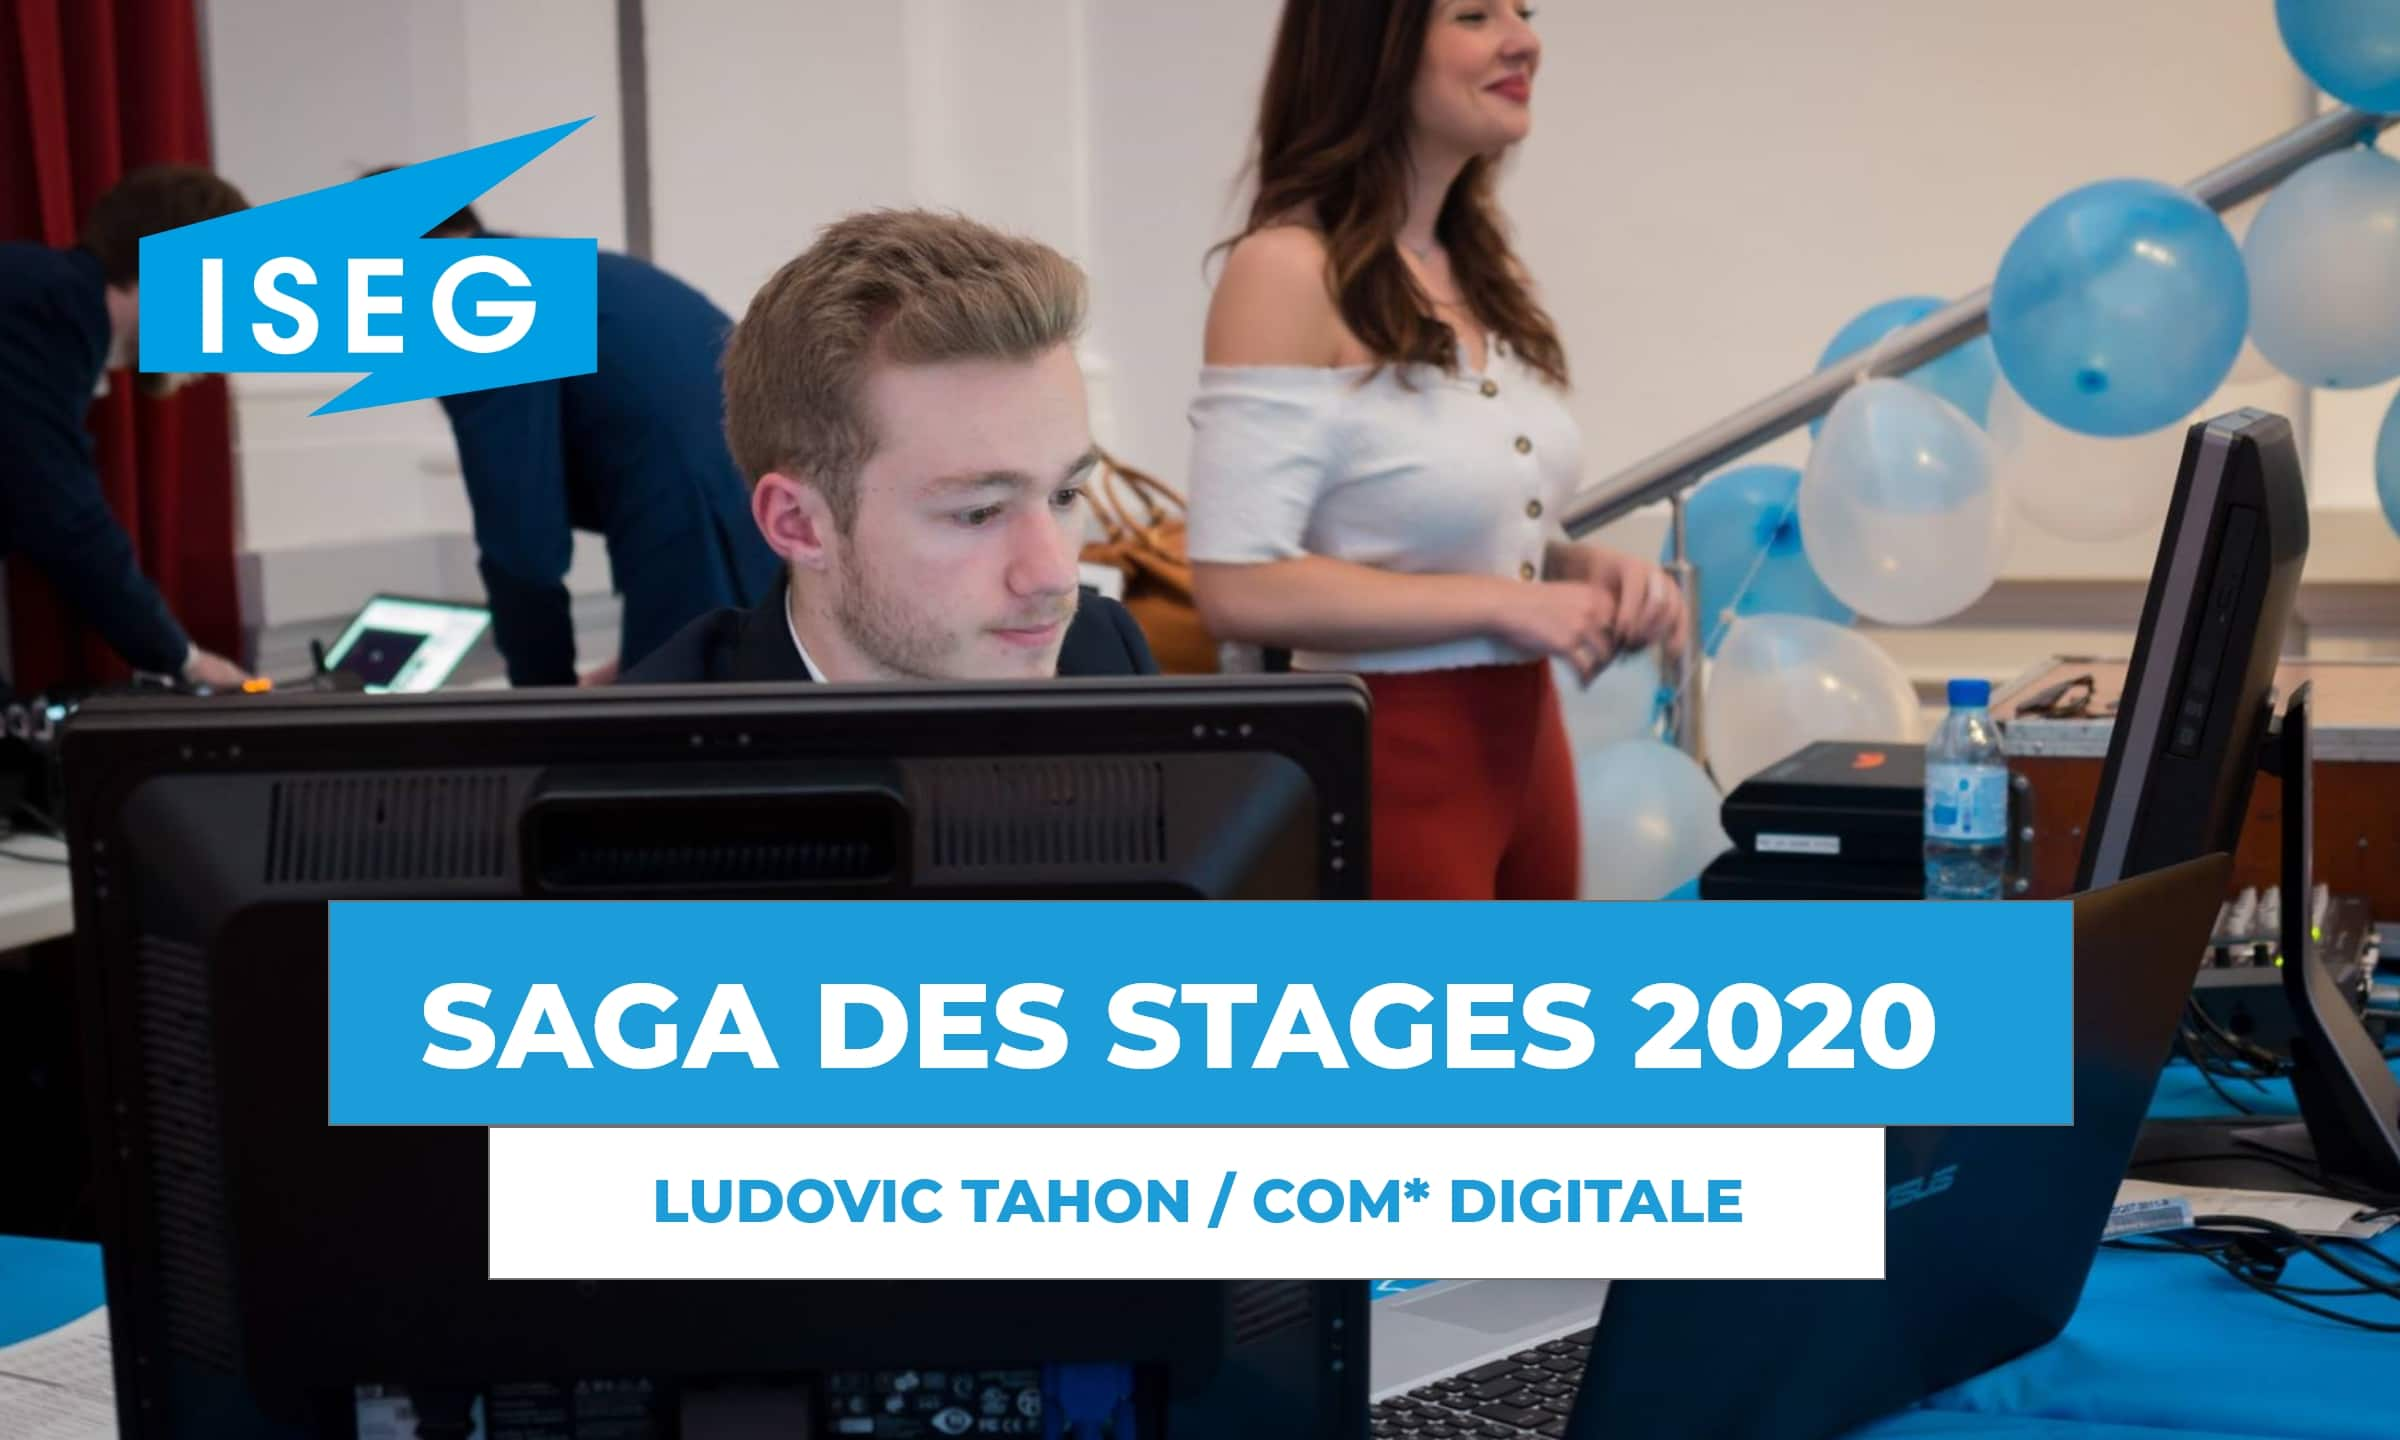 SAGA DES STAGES : rencontre avec Ludovic Tahon, en stage de communication digitale à l'ISEG !